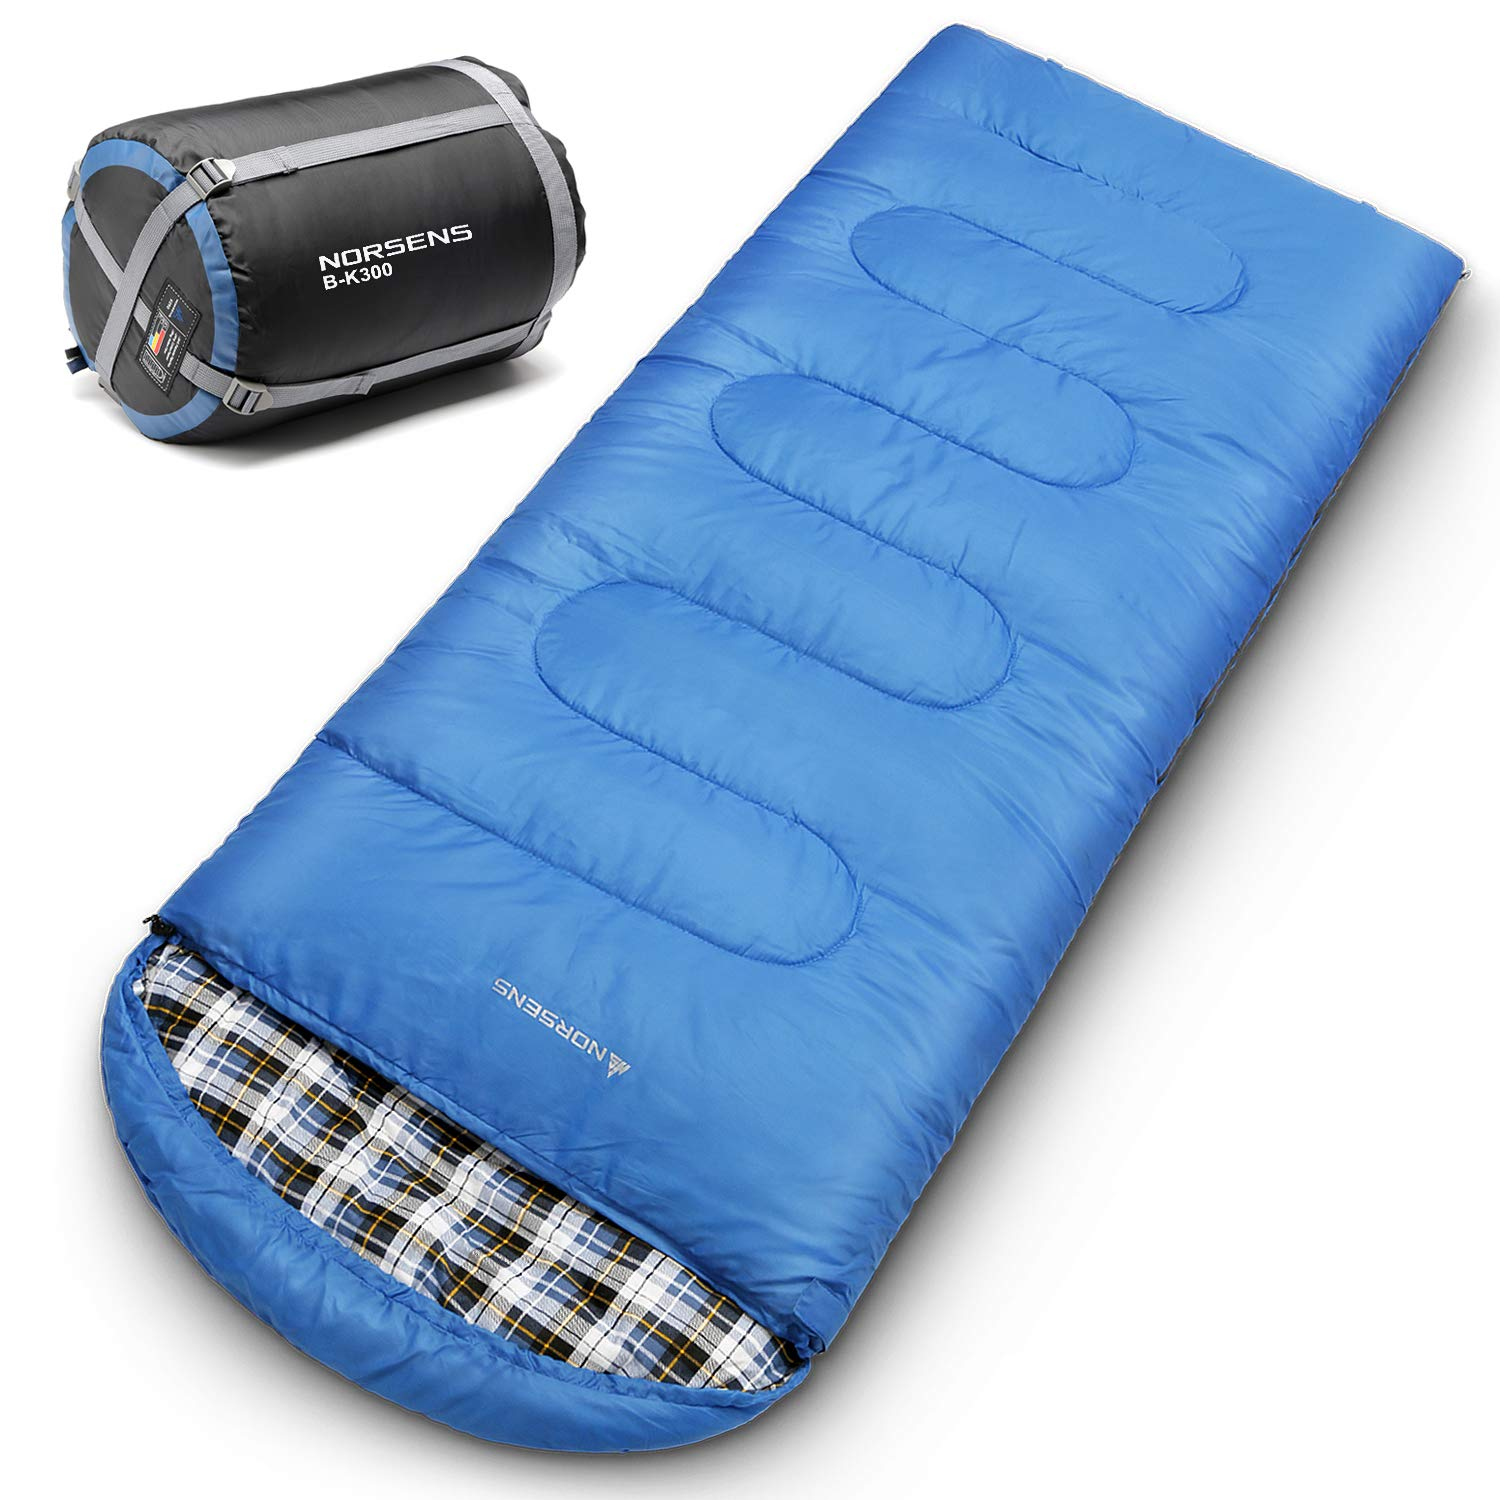 NORSENS 0 Degree Ultralight Cold Weather Sleeping Bags for Camping, Backpacking, Hiking, Traveling. Thickened Outdoor Lightweight Sleeping Bag with Compression Sack for Adults. 90.5 x 33.4 inch, Blue by NORSENS